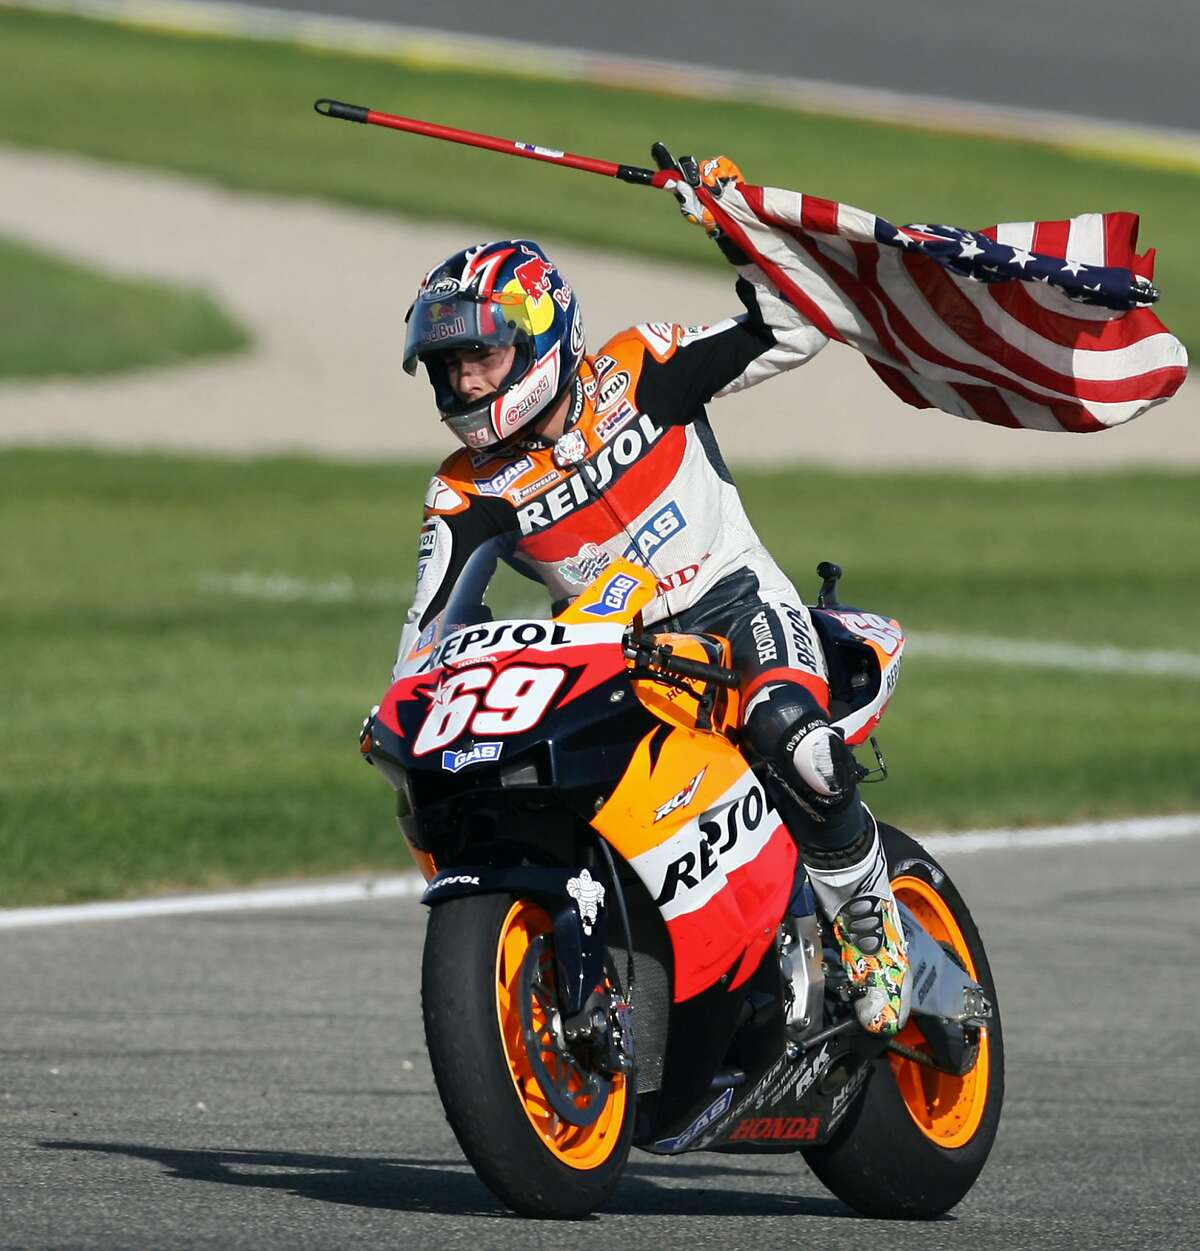 This file photo taken on October 29, 2006 shows US Nicky Hayden celebrates after winning the 2006 Moto GP championship after the Valencia Grand Prix at the Ricardo Tormo racetrack in Cheste, 29 October 2006. Australia's Troy Bayliss won the race with Italy's Loris Capirossi in second and US Nicky Hayden in third. American World Superbike Honda rider Nicky Hayden, hit by a car in a bicycle accident in Italy last week, has died of his injuries, the Italian hospital where he was treated said May 22, 2017.